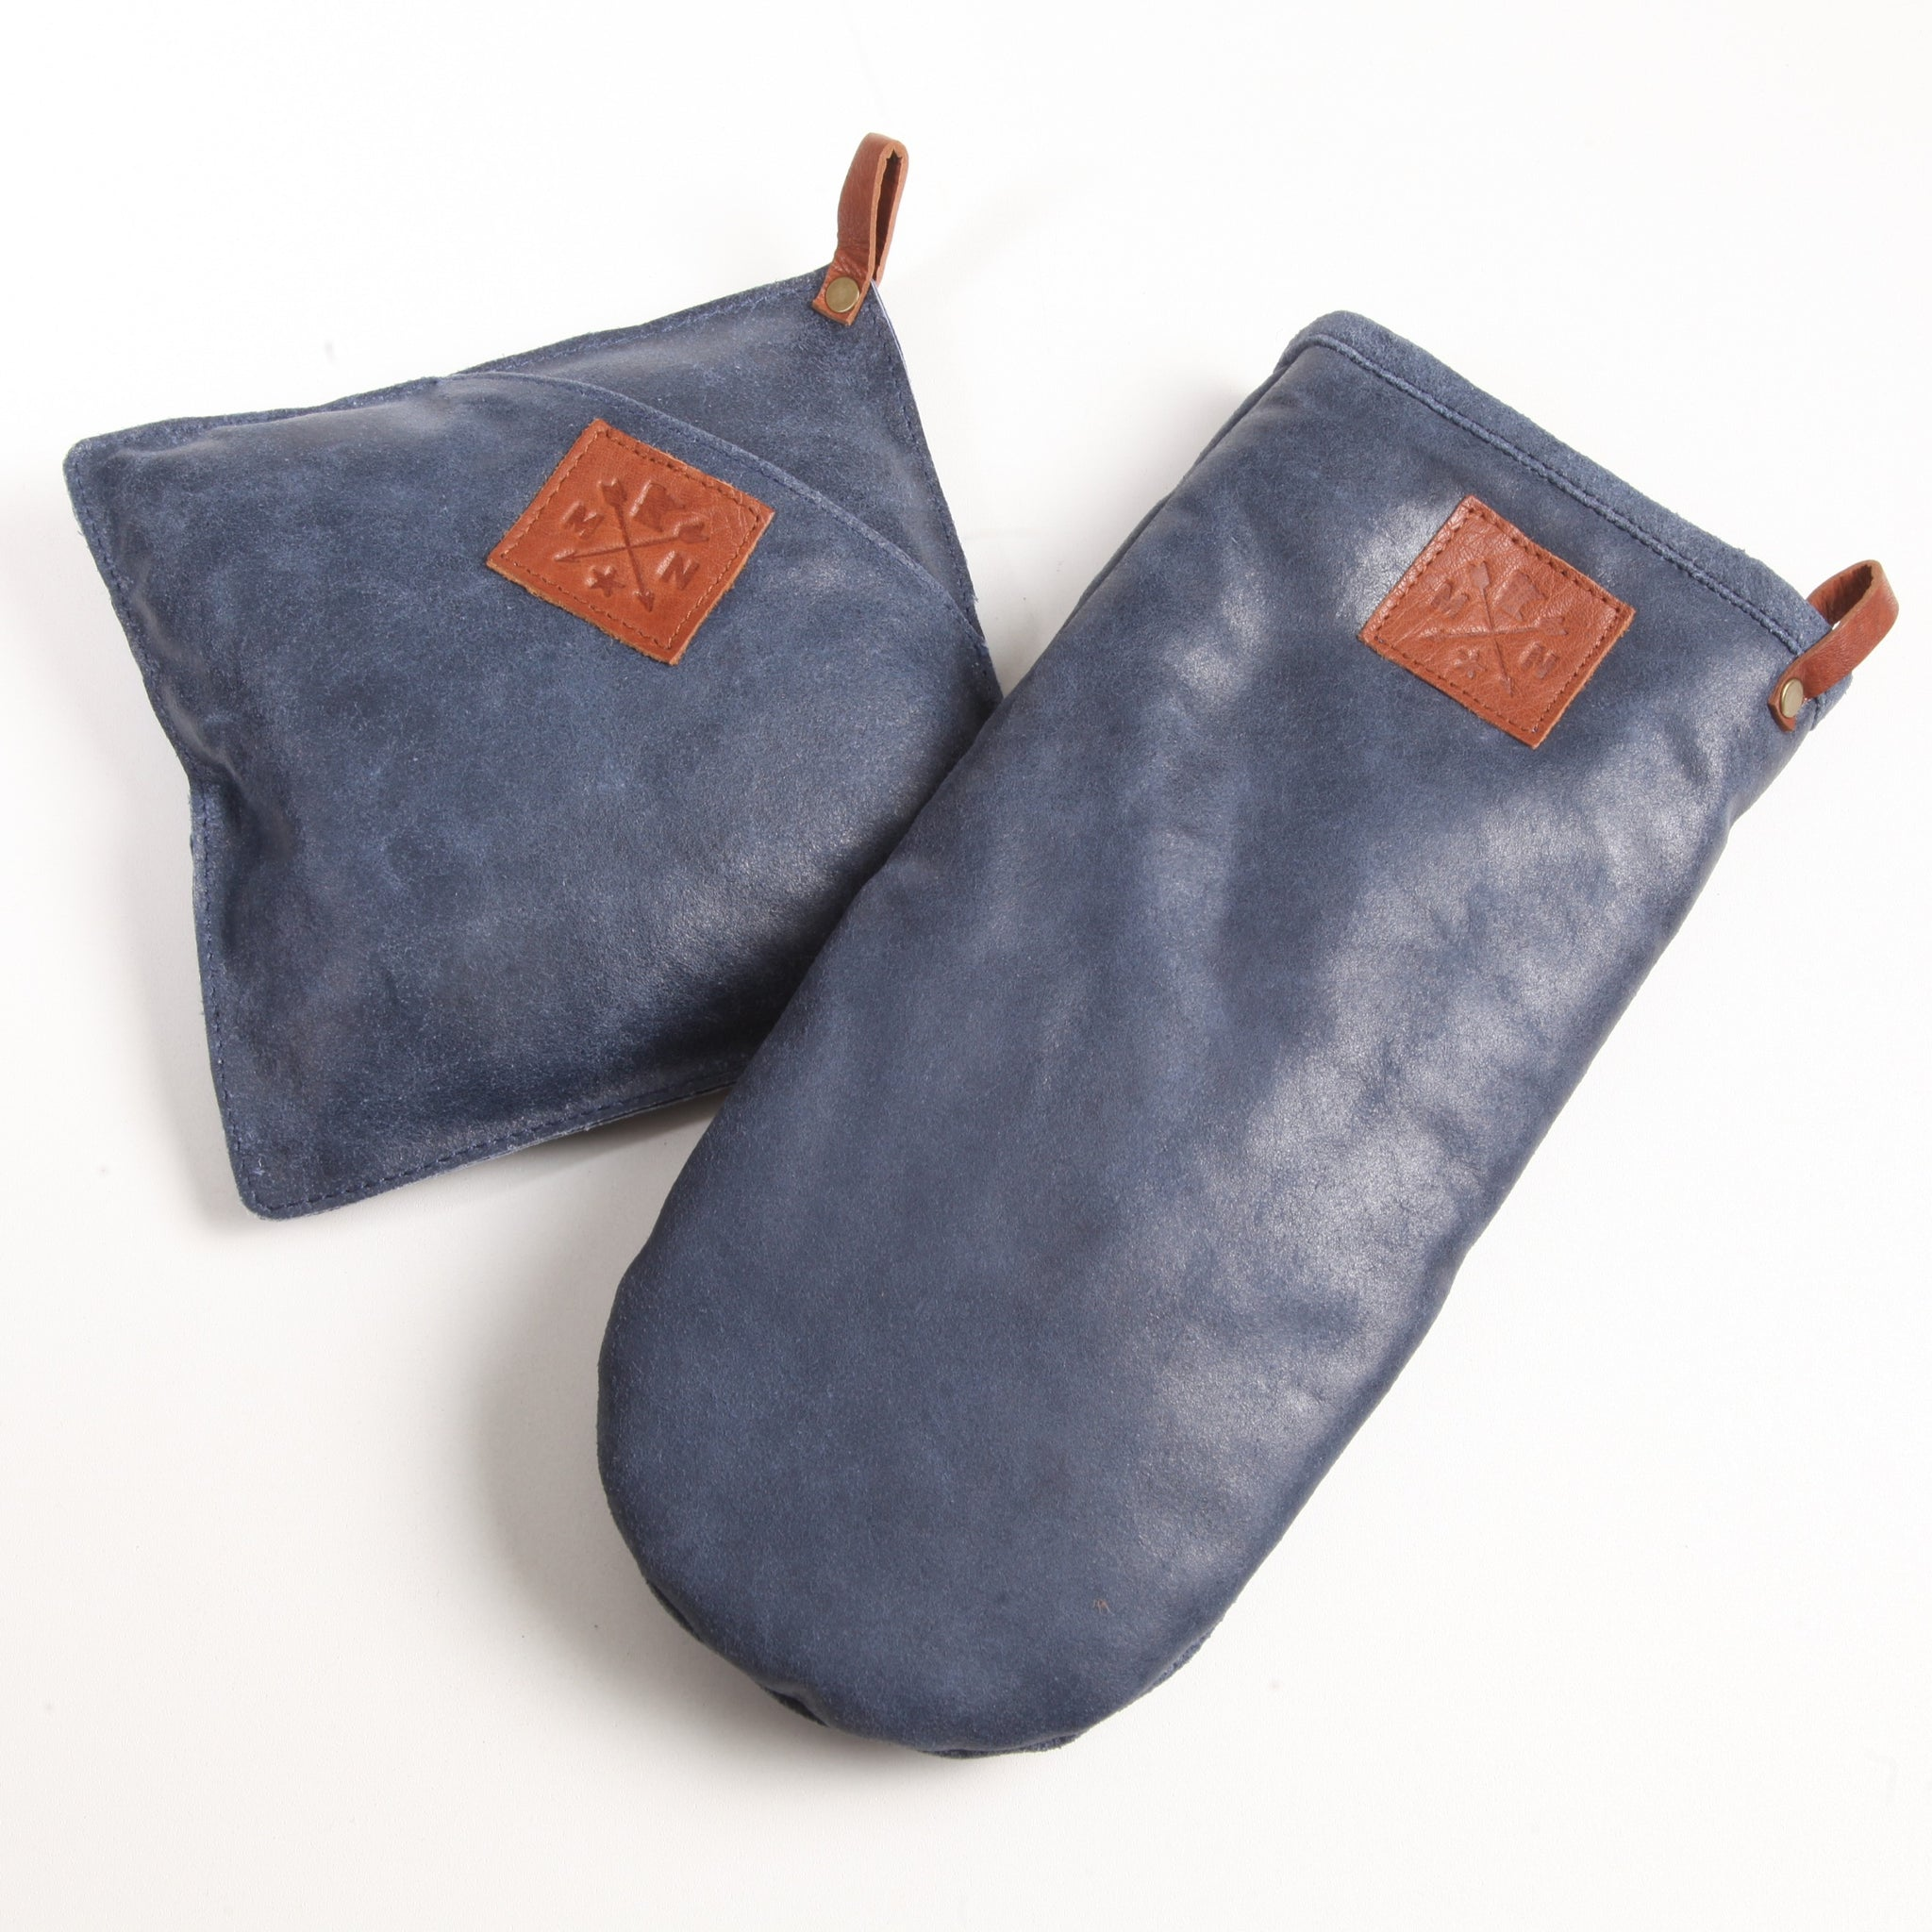 Blue Leather MN Pot Holder & Oven Mitt